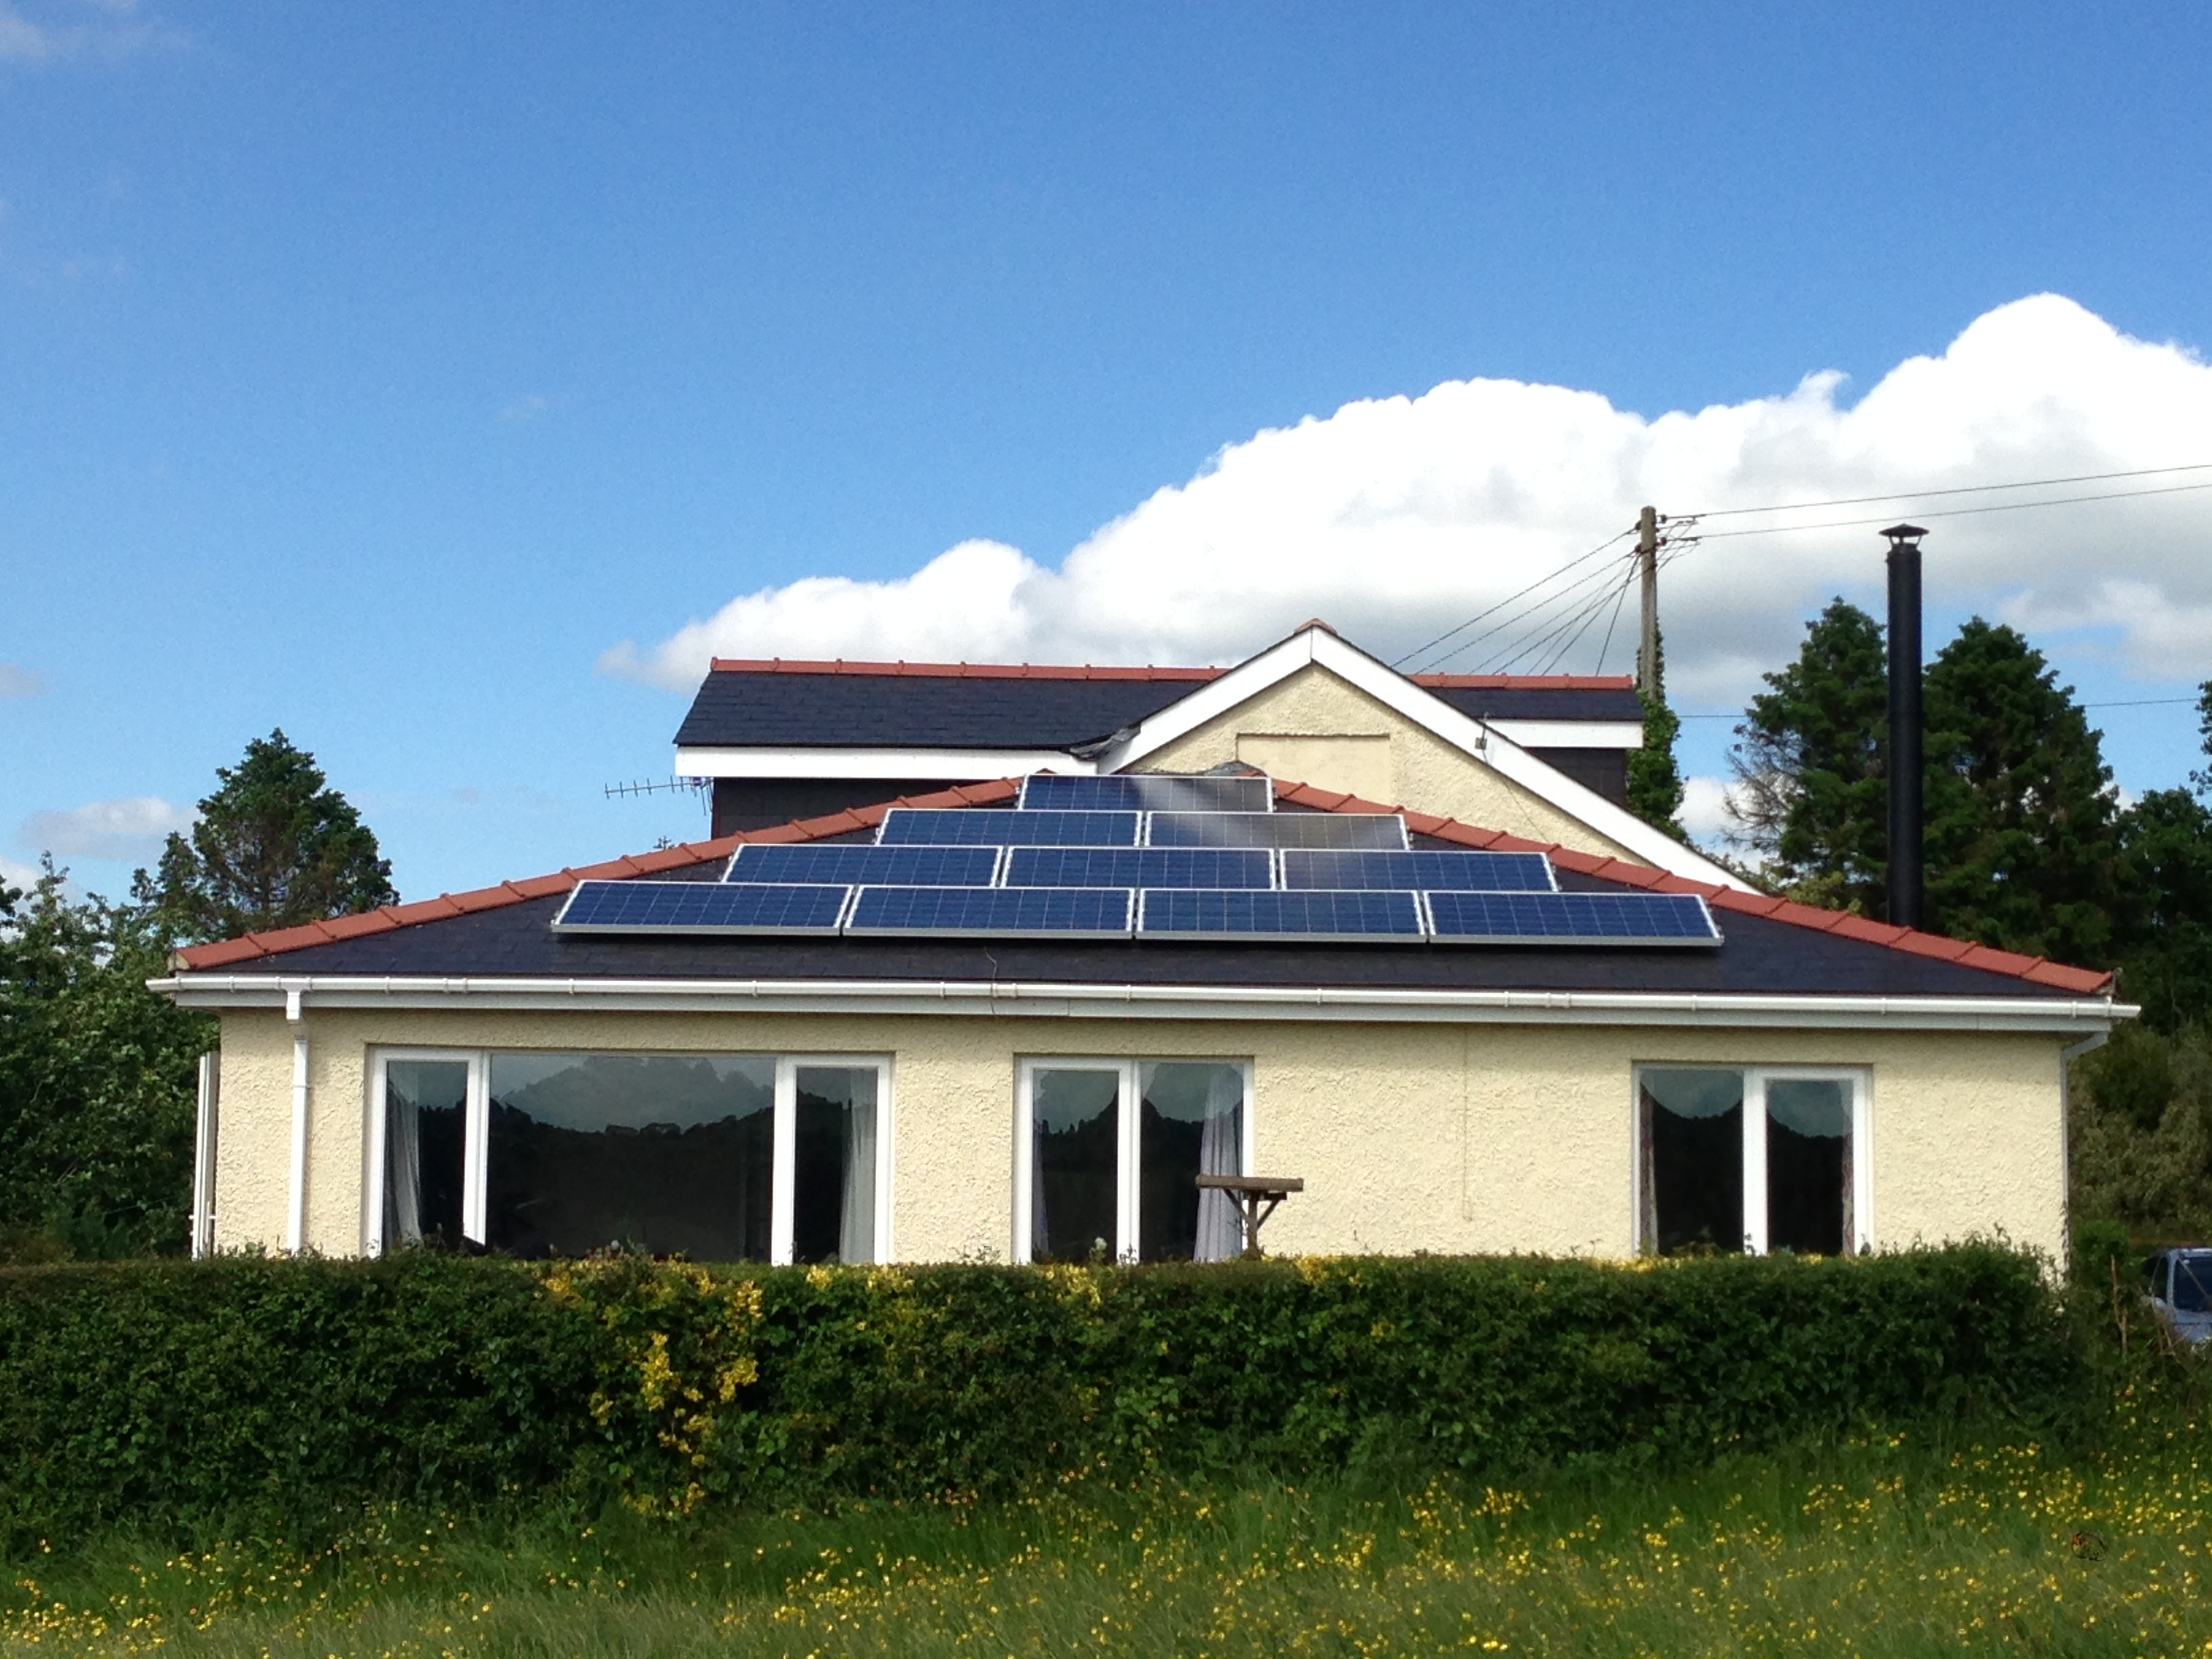 Maximising roof space for self-sufficiency and cost savings.